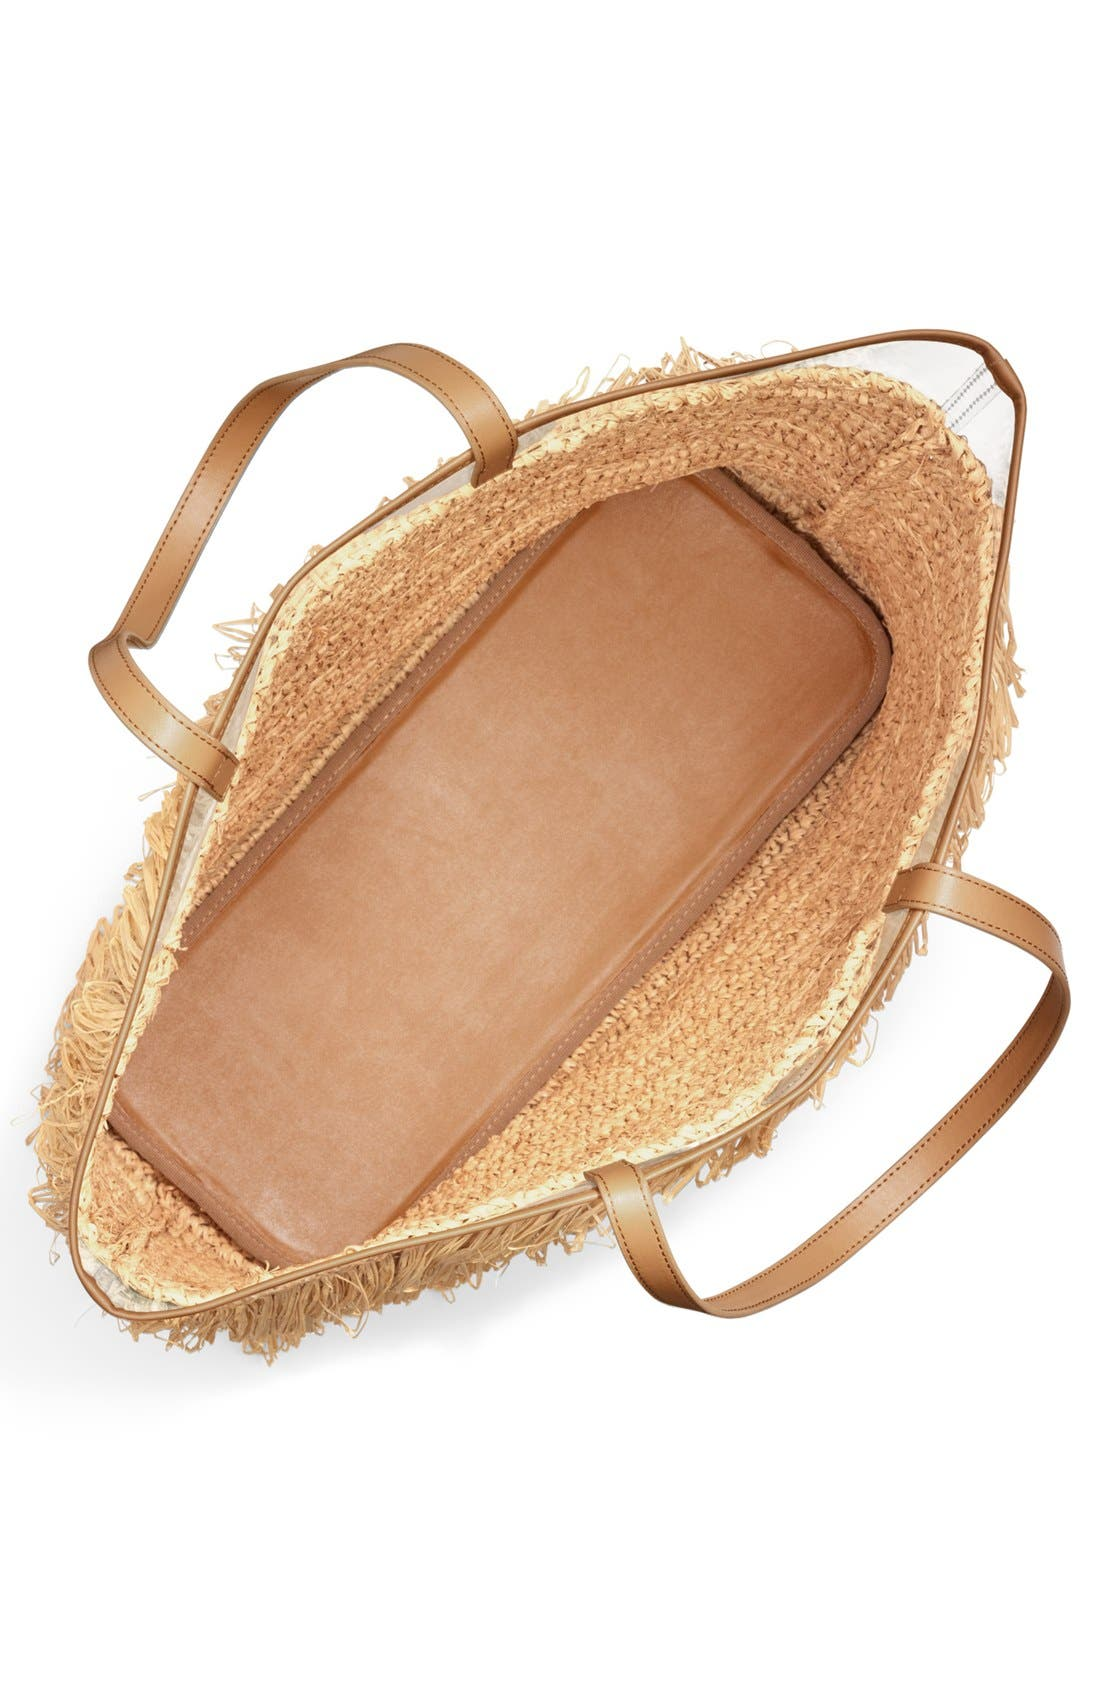 Alternate Image 3  - Tory Burch 'Molly' Tote